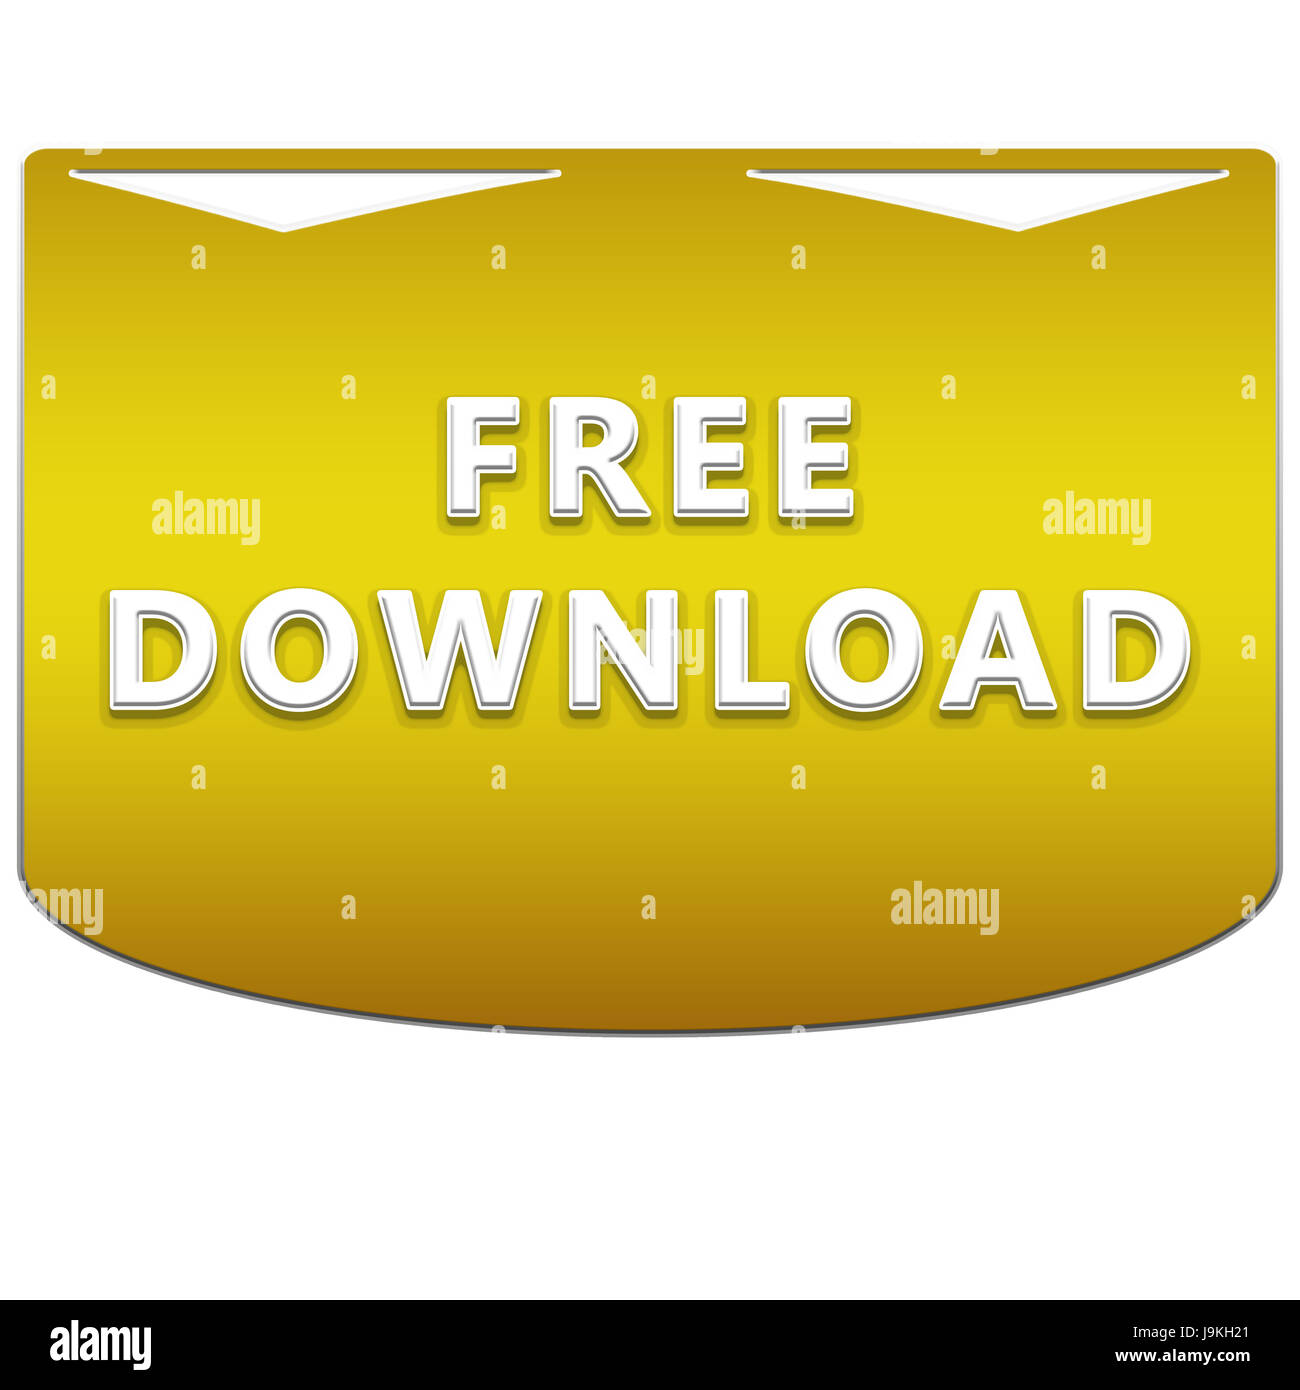 Free Download Stock Photos & Free Download Stock Images - Alamy